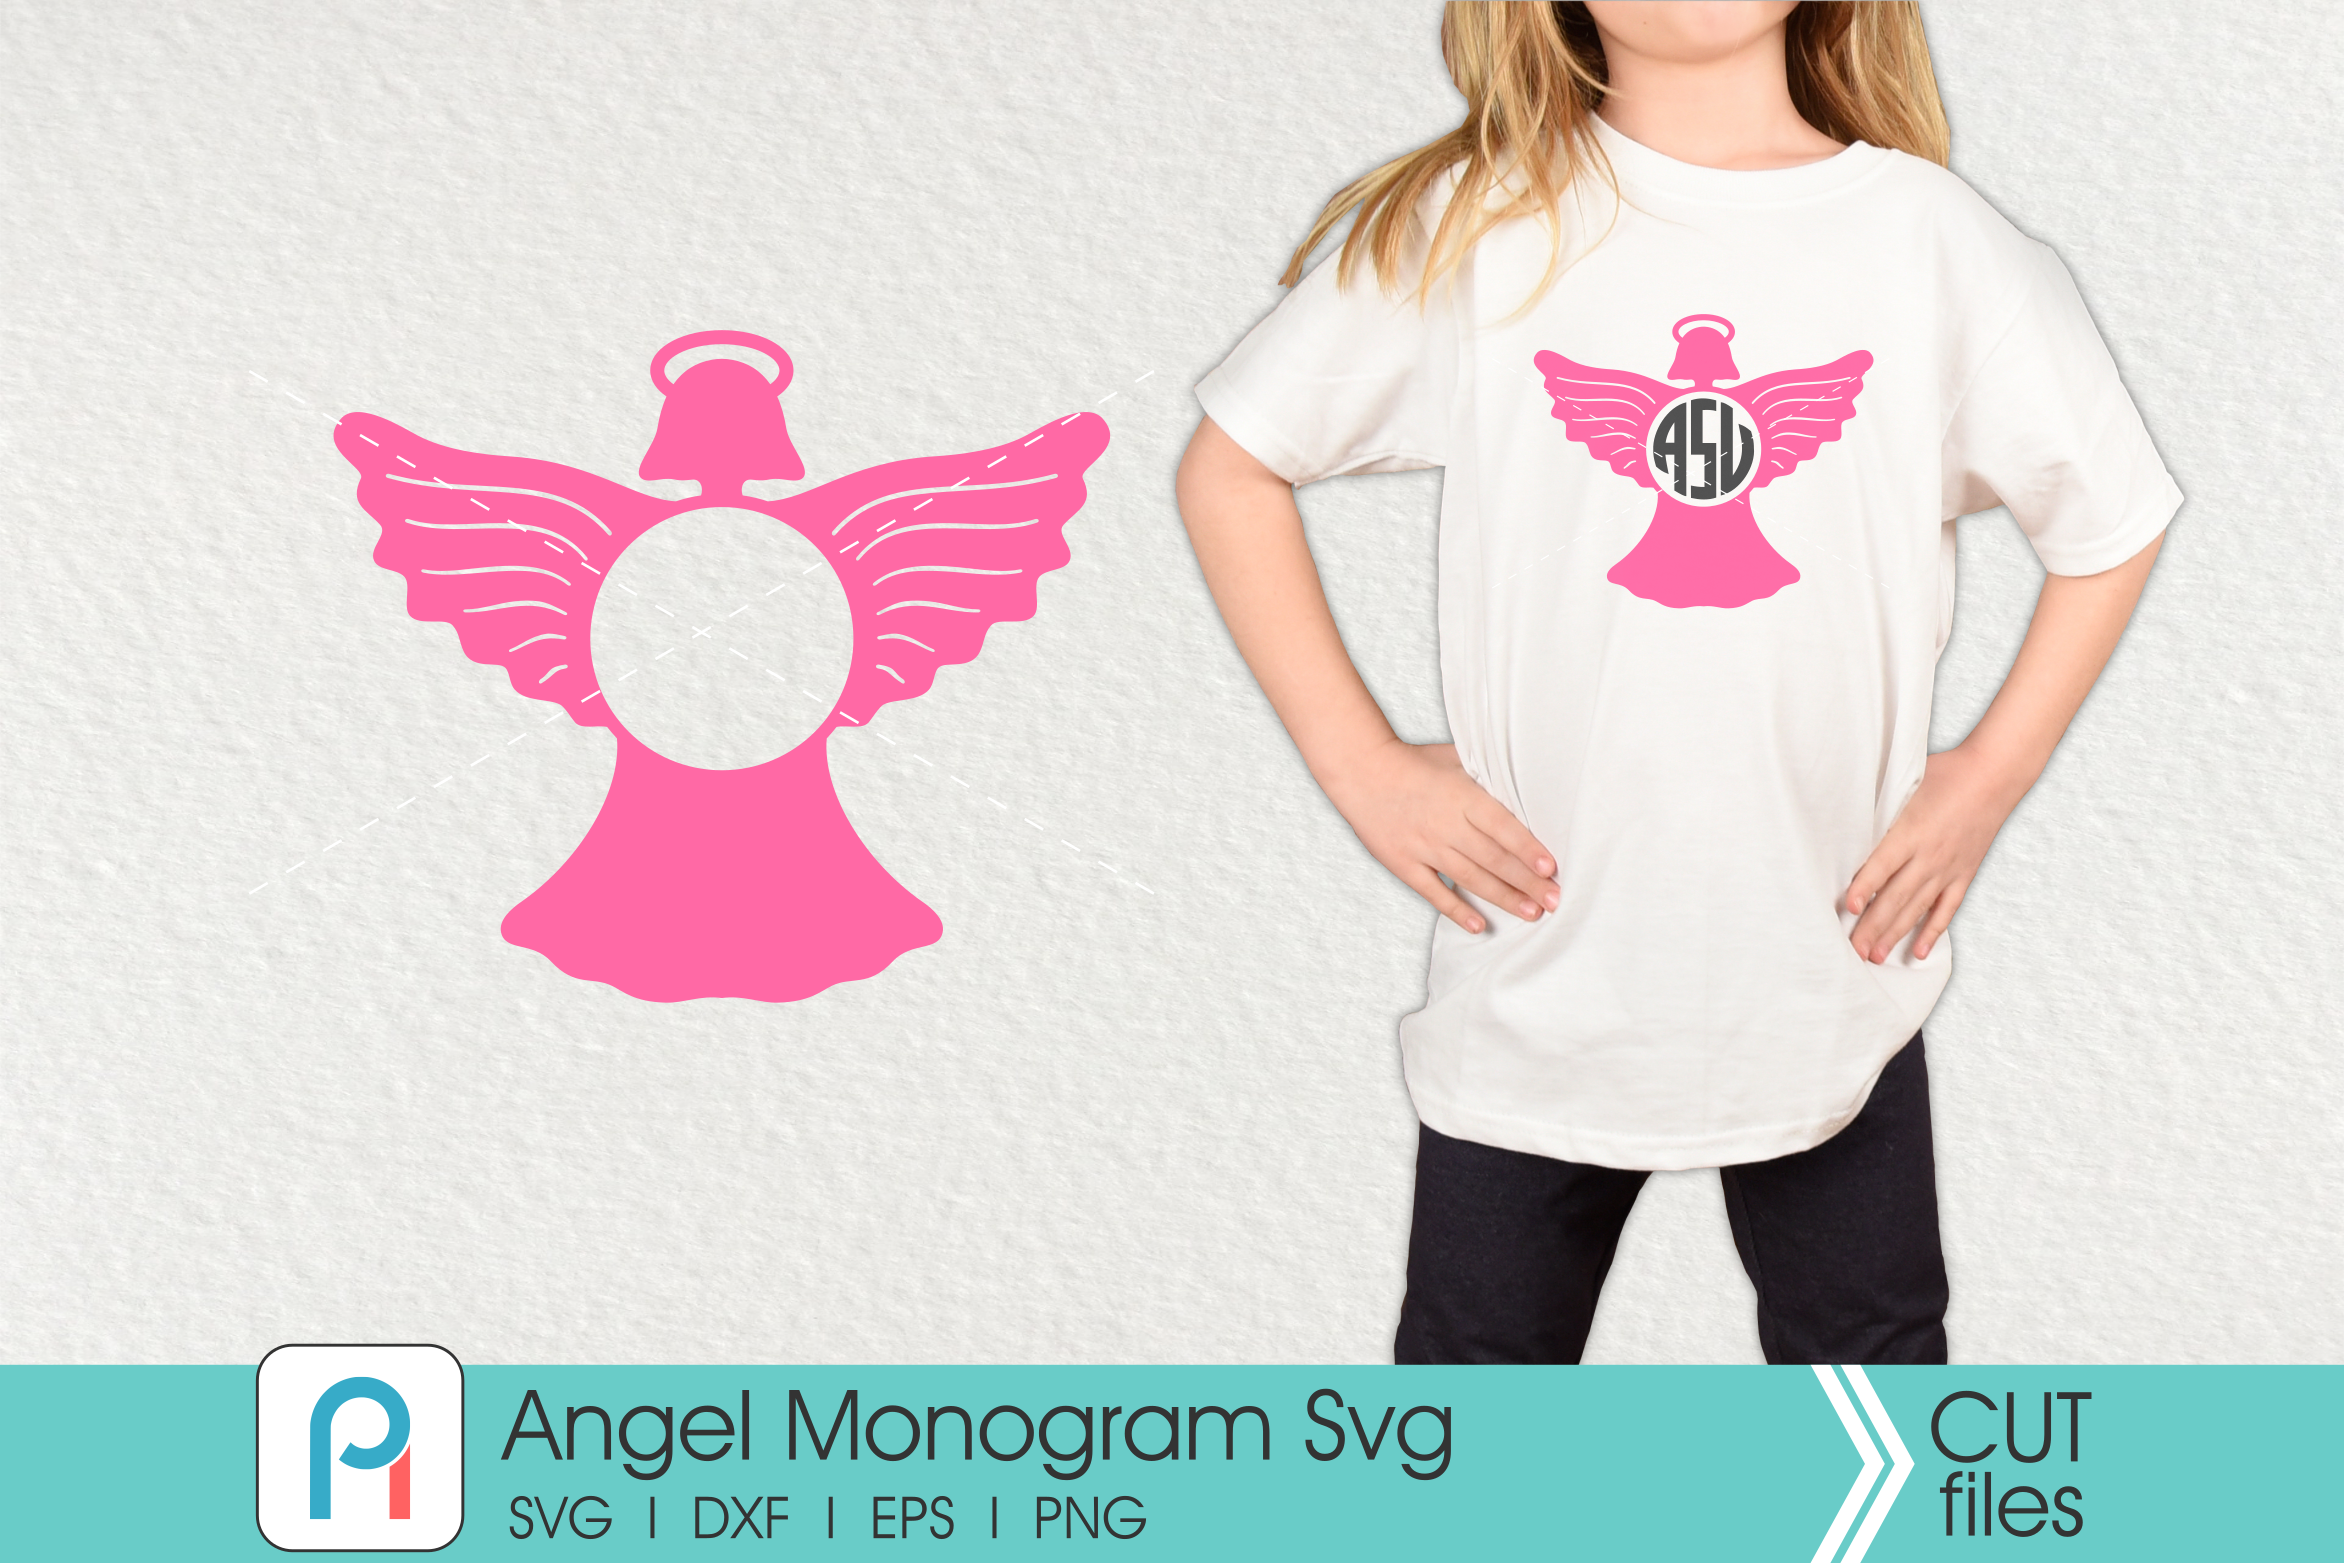 Download Free Angel Monogram Graphic By Pinoyartkreatib Creative Fabrica for Cricut Explore, Silhouette and other cutting machines.